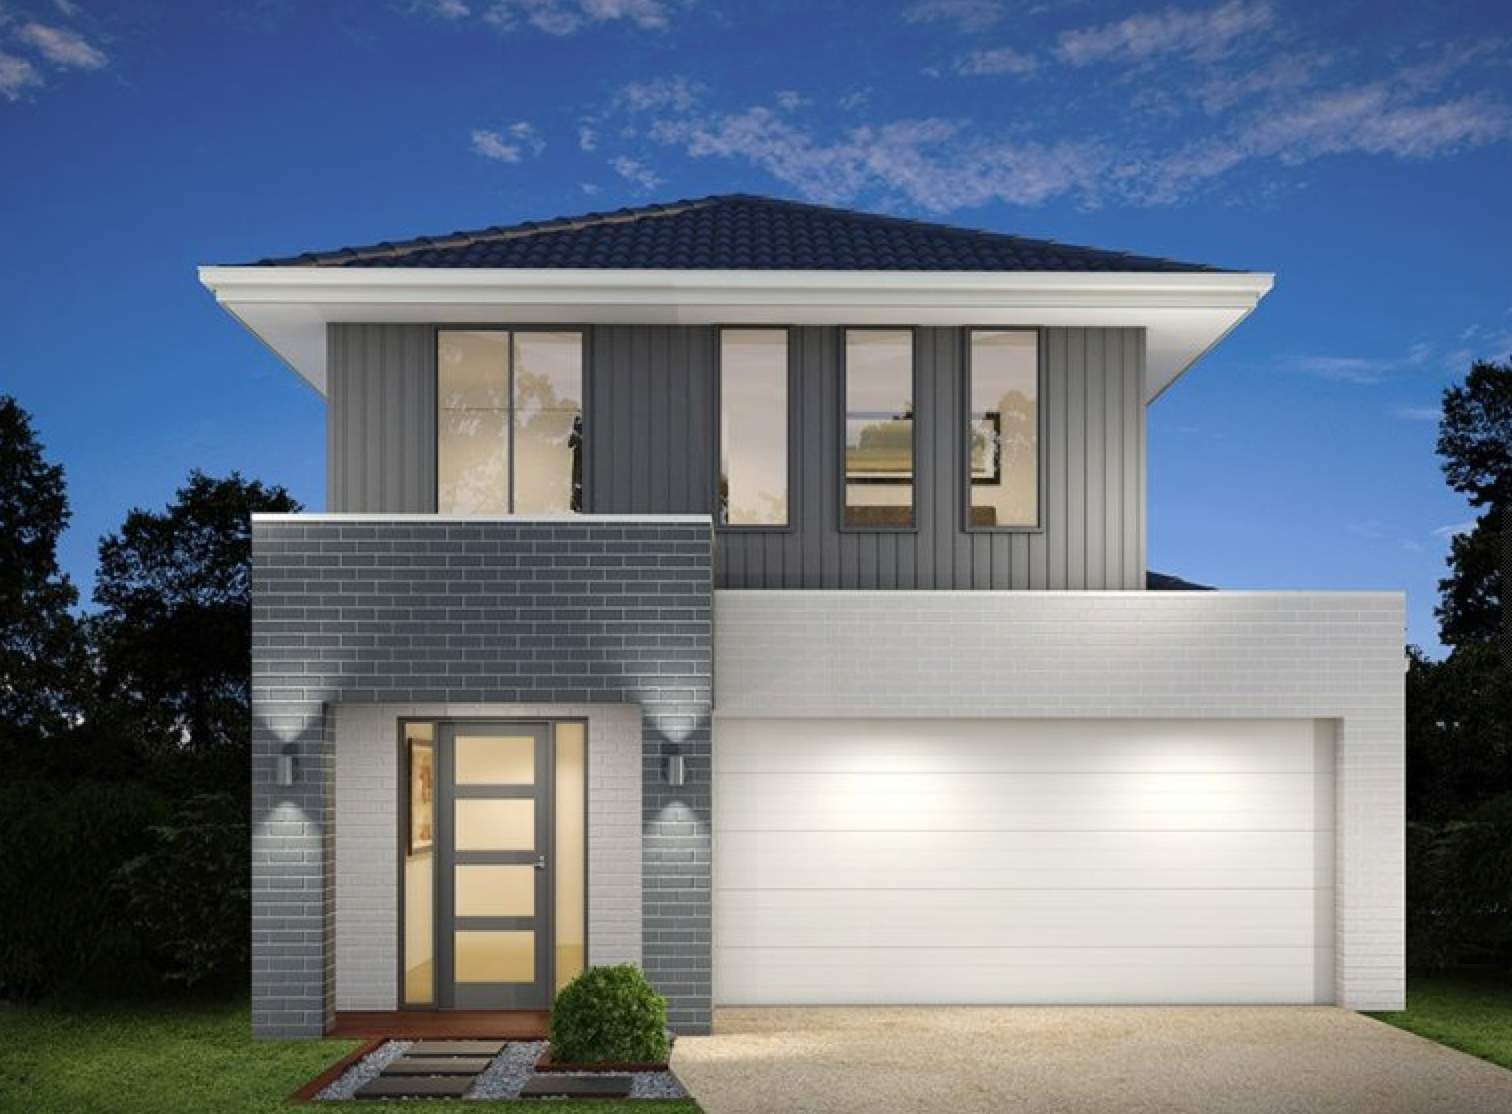 Marvelous New House U0026 Land Package   Example Of Facade